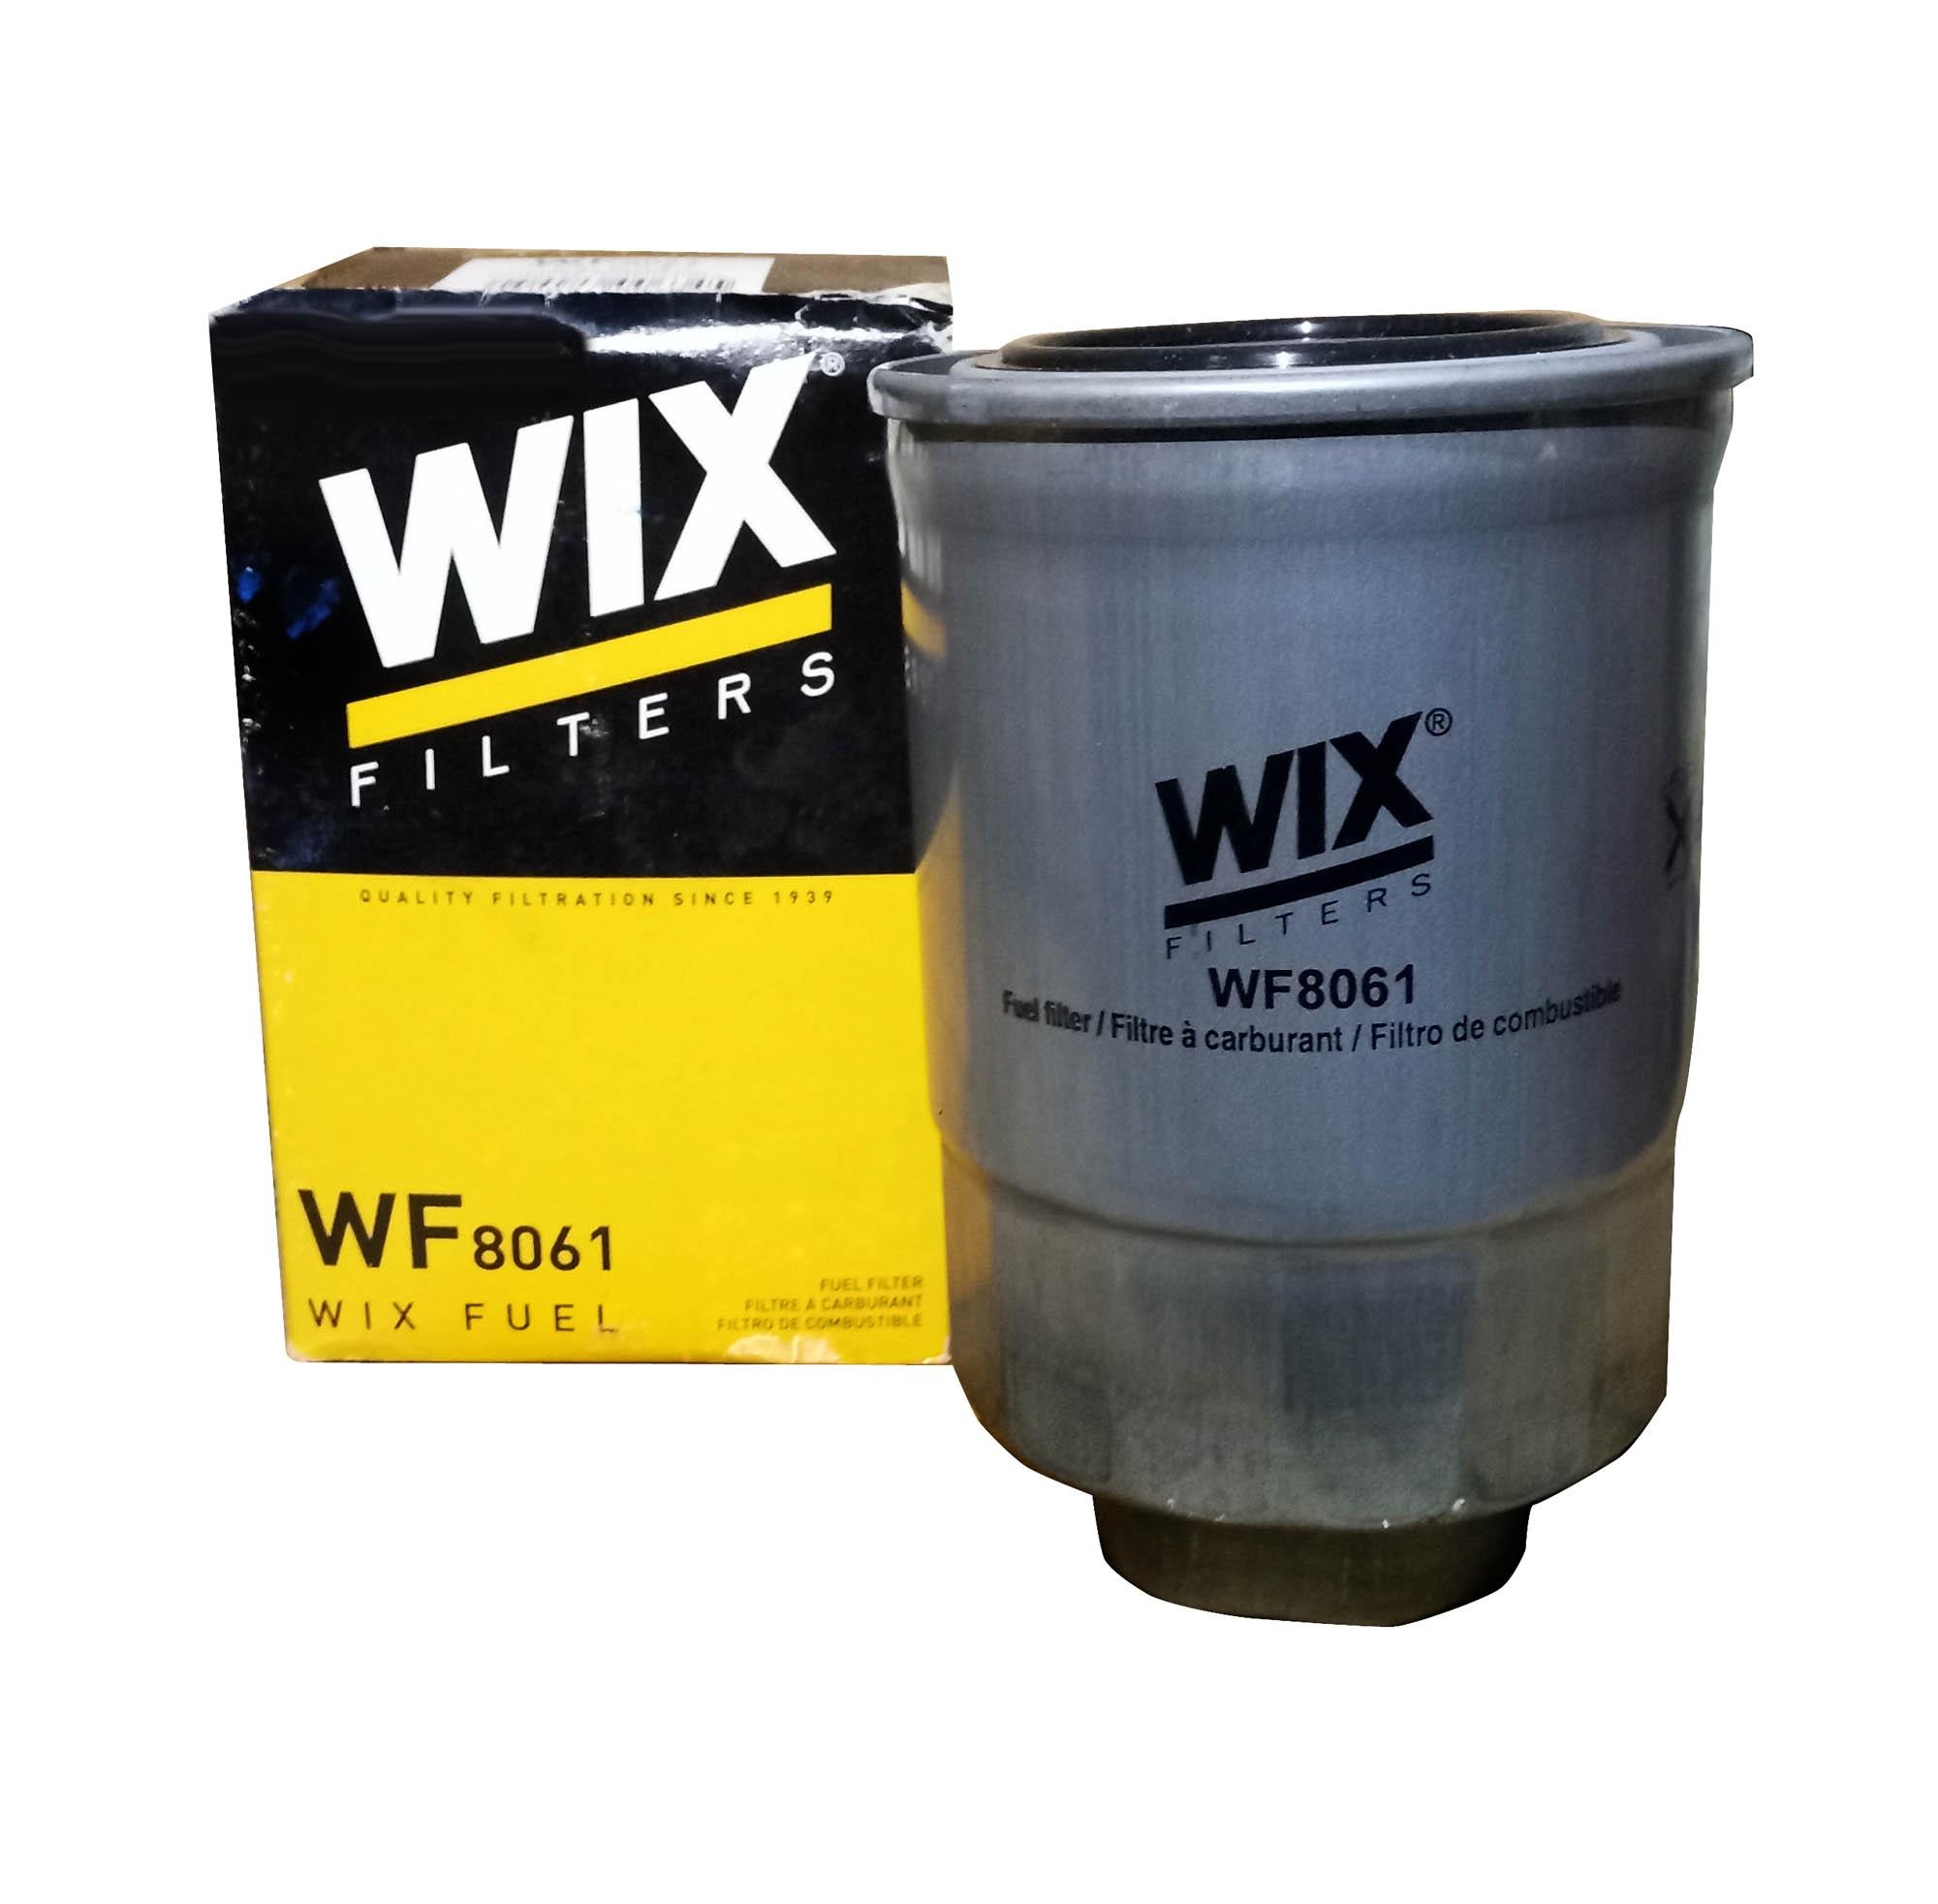 Fuel Filter For Sale Gas Online Brands Prices Reviews In 2010 Ranger Wix Wf8061 Mitsubishi Montero Sport Triton Di D 2006 11